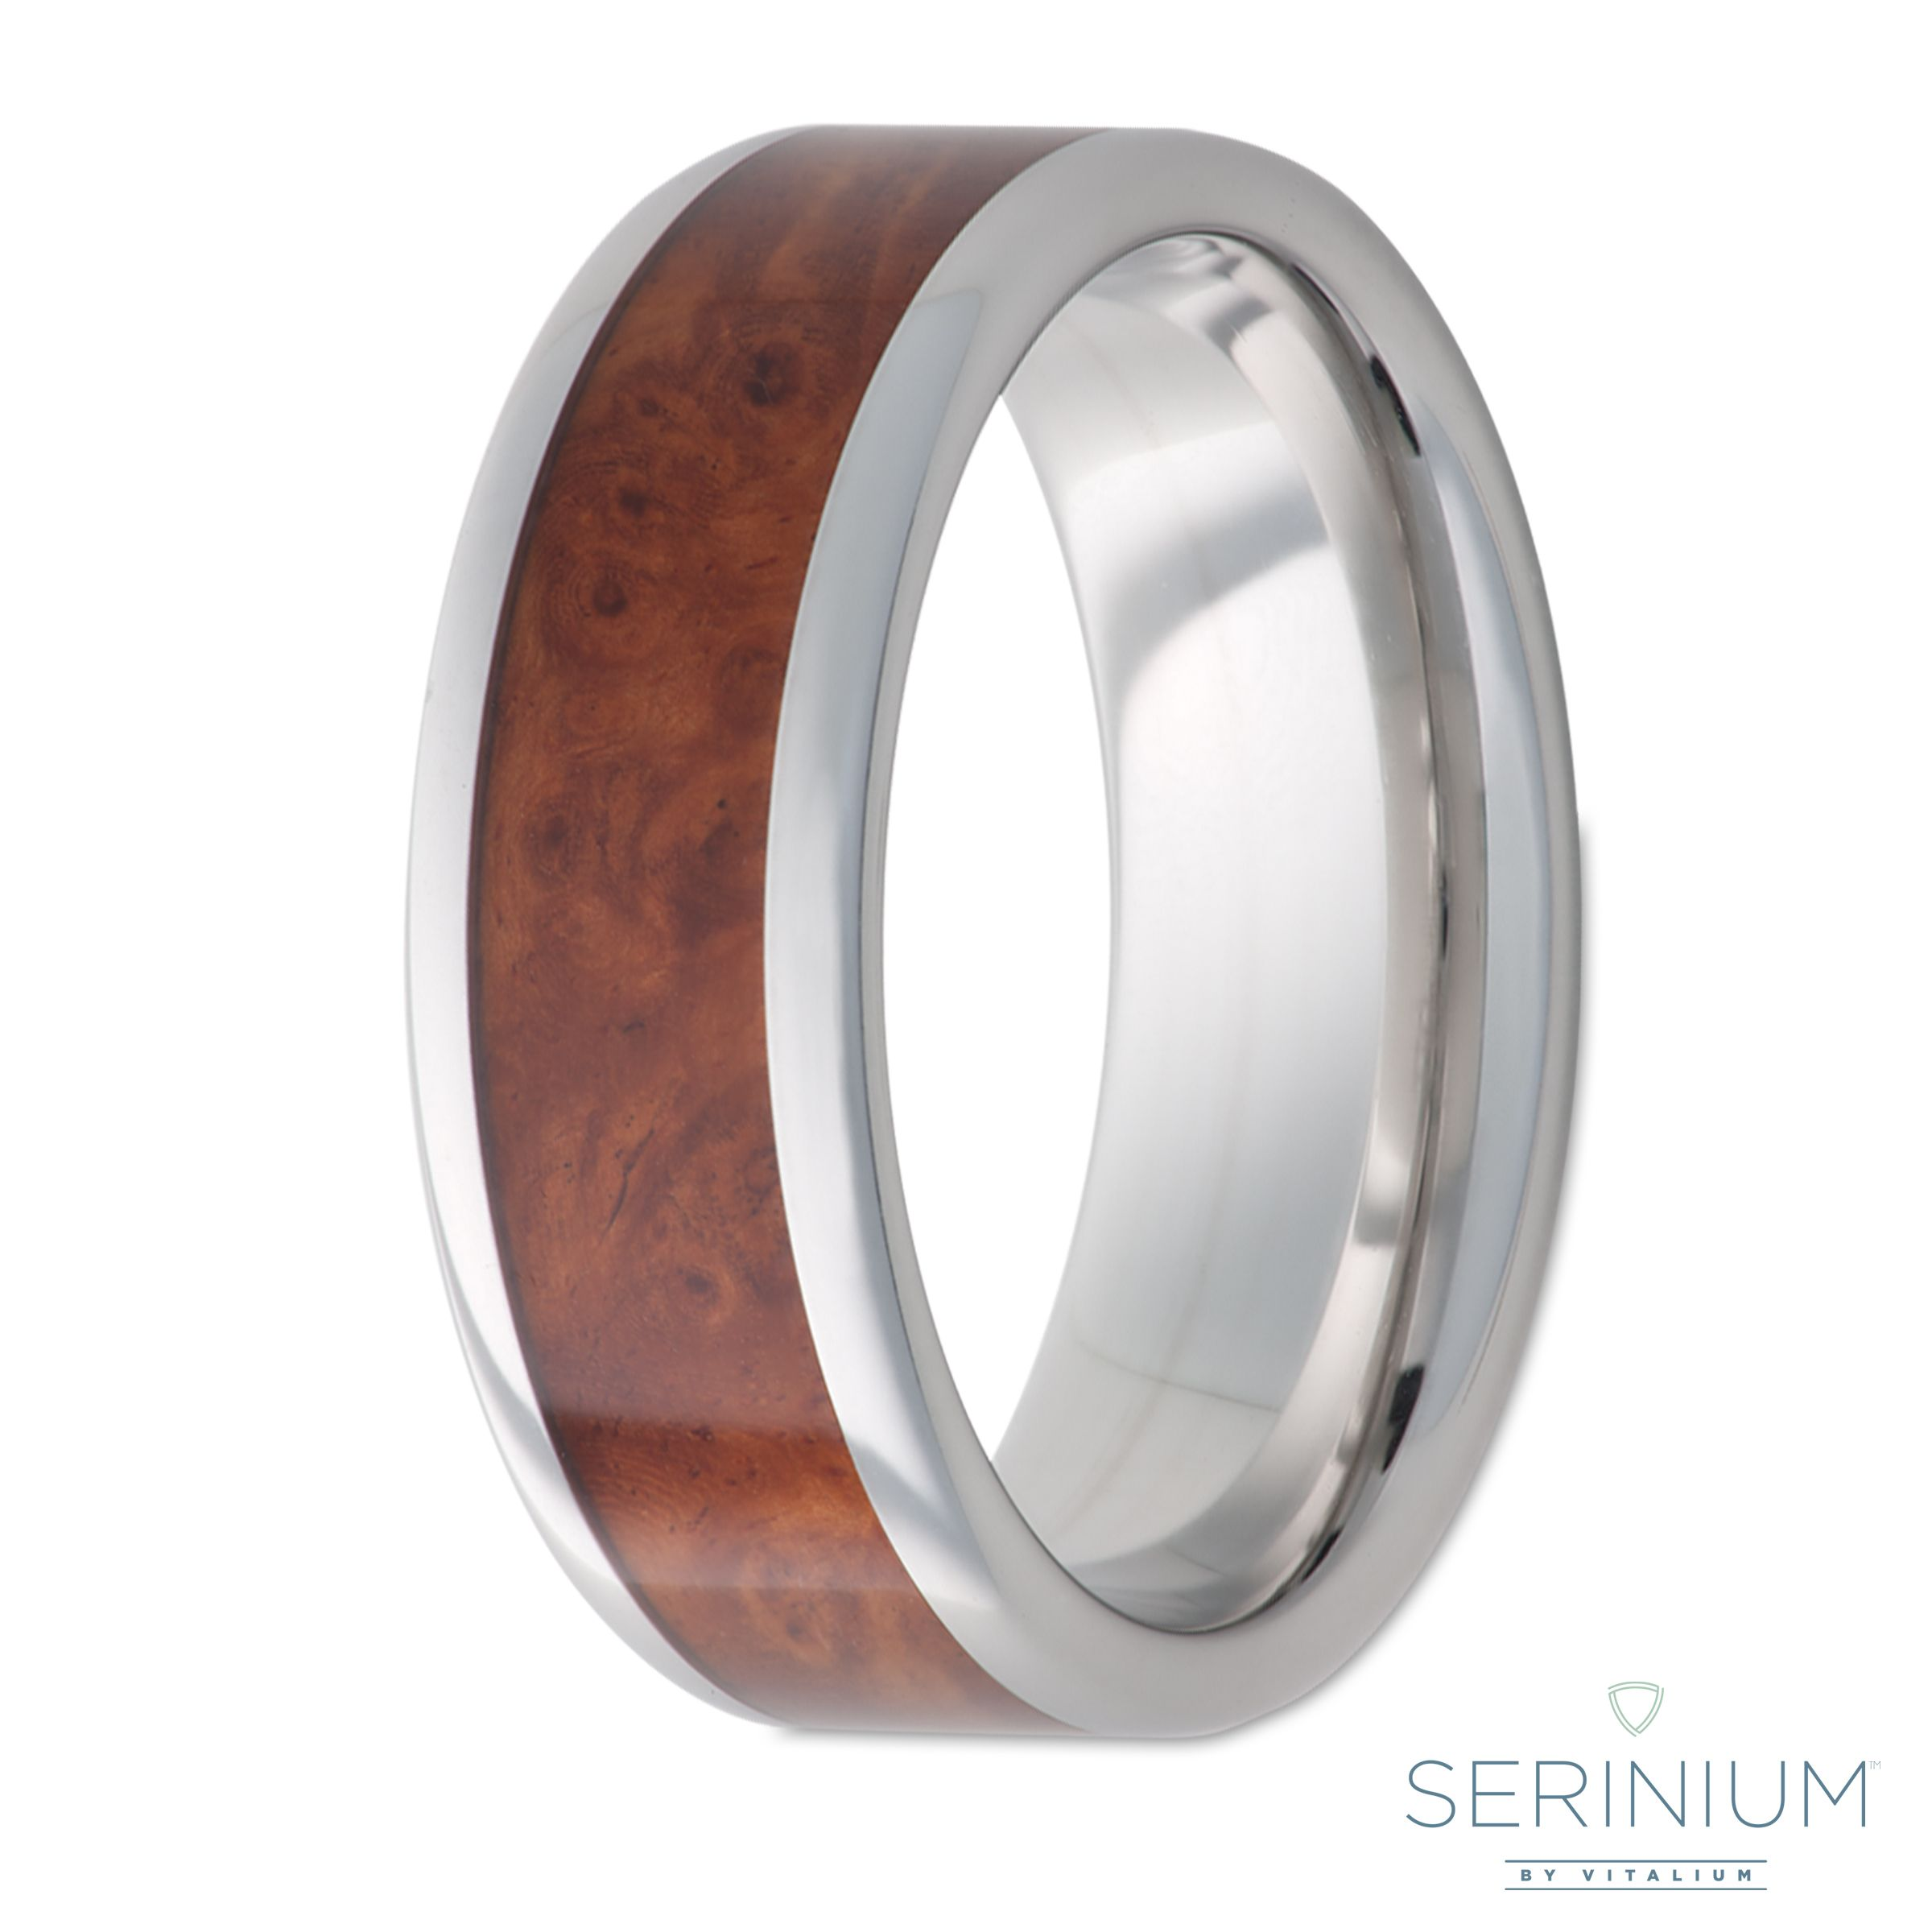 Serinium Men's Wedding Ring